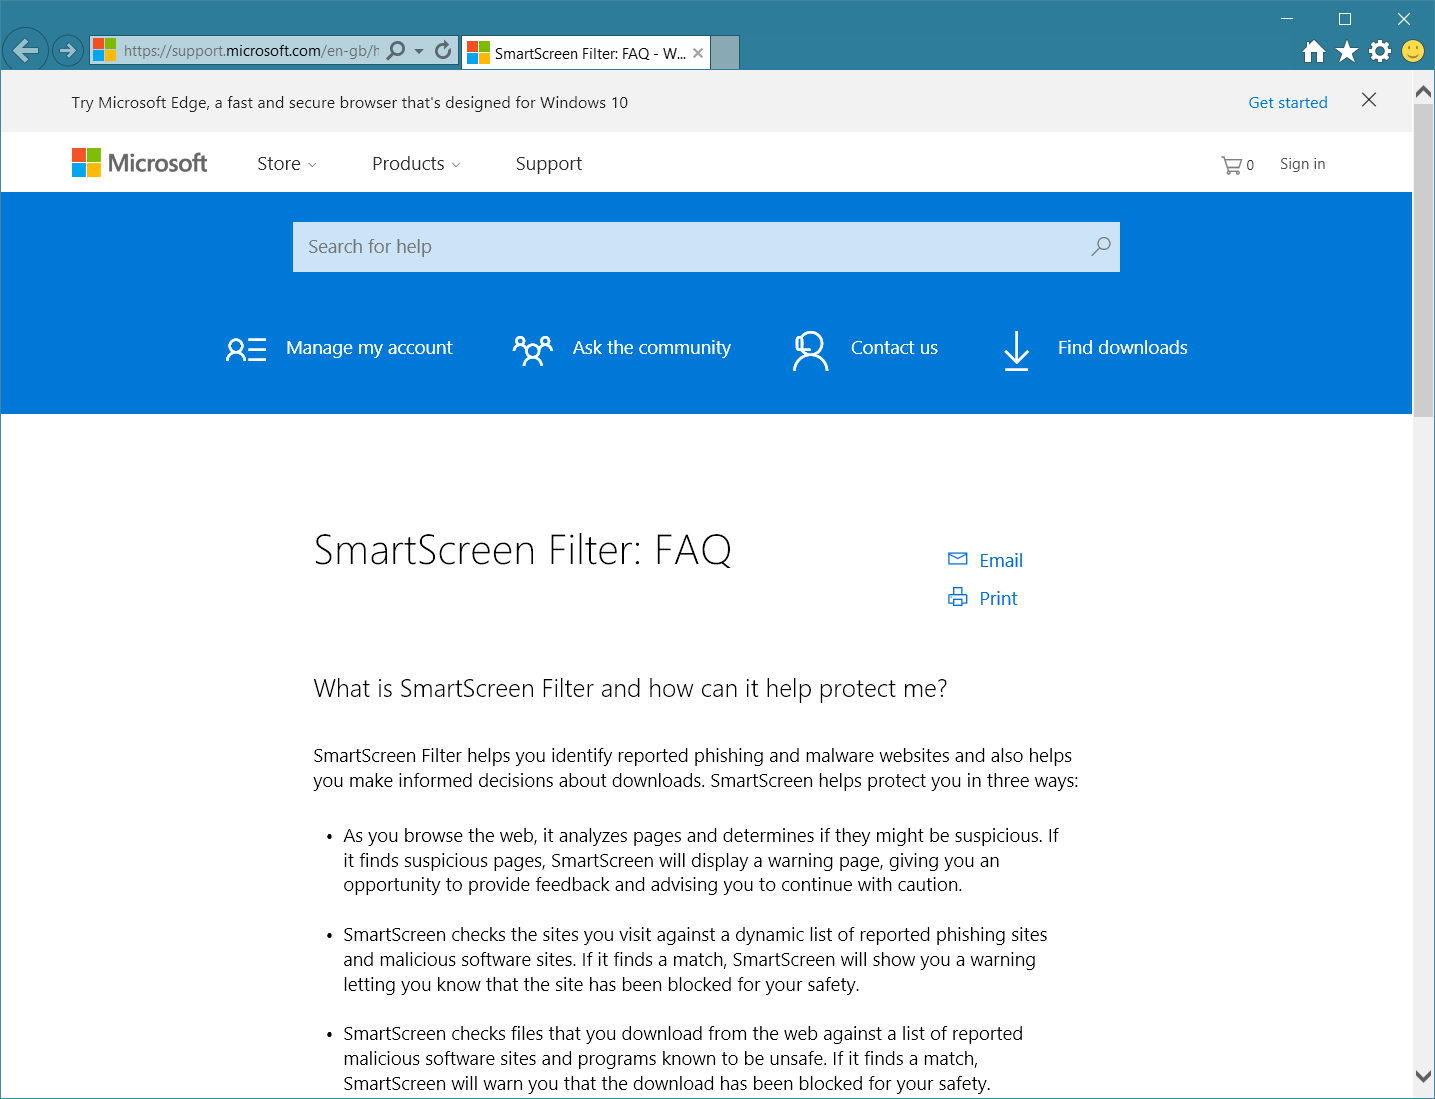 SmartScreen Filter FAQ